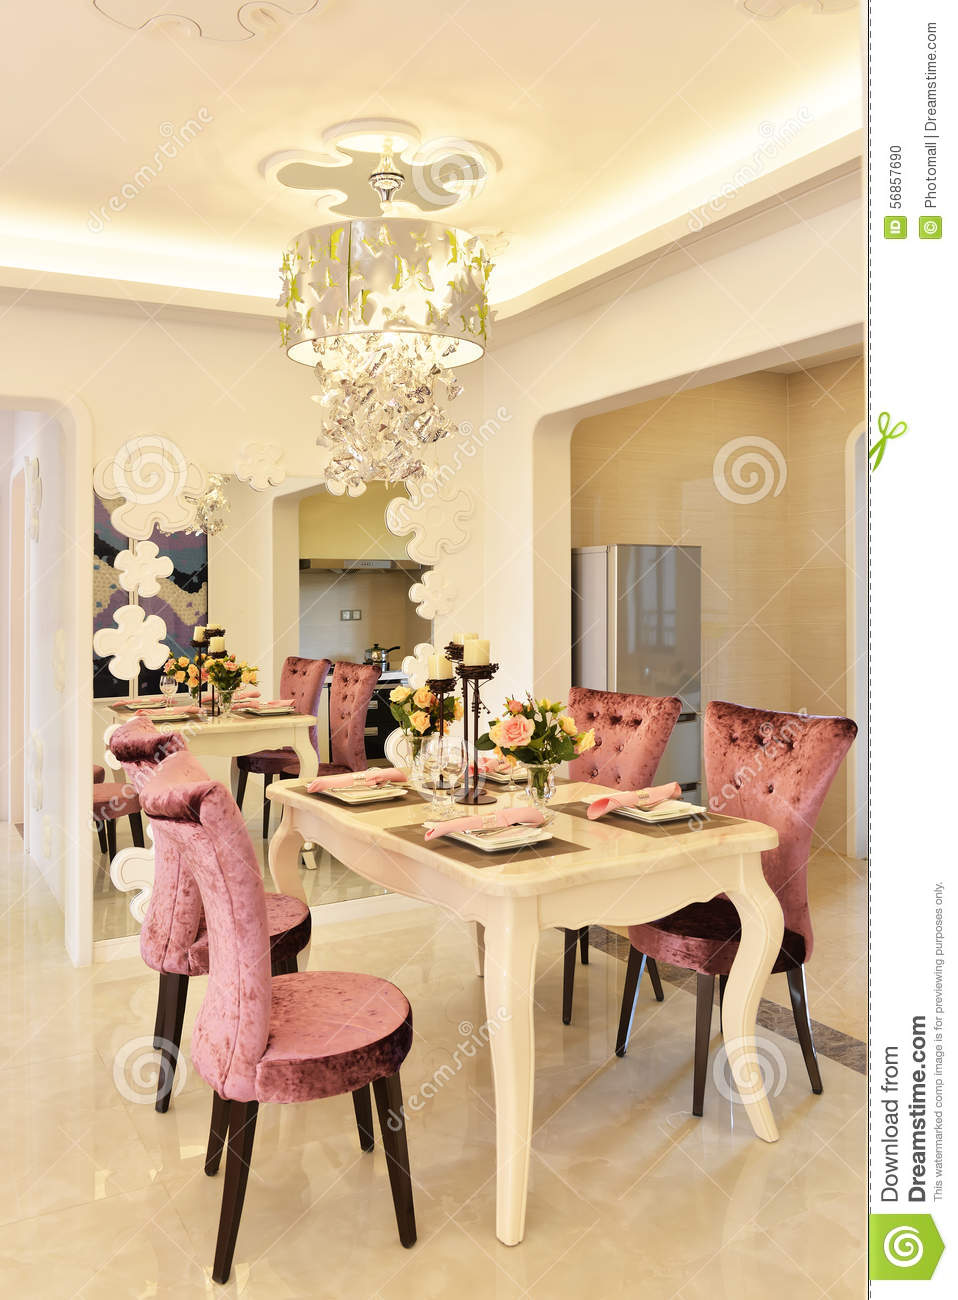 dining area royalty free stock photo 8897973. Black Bedroom Furniture Sets. Home Design Ideas